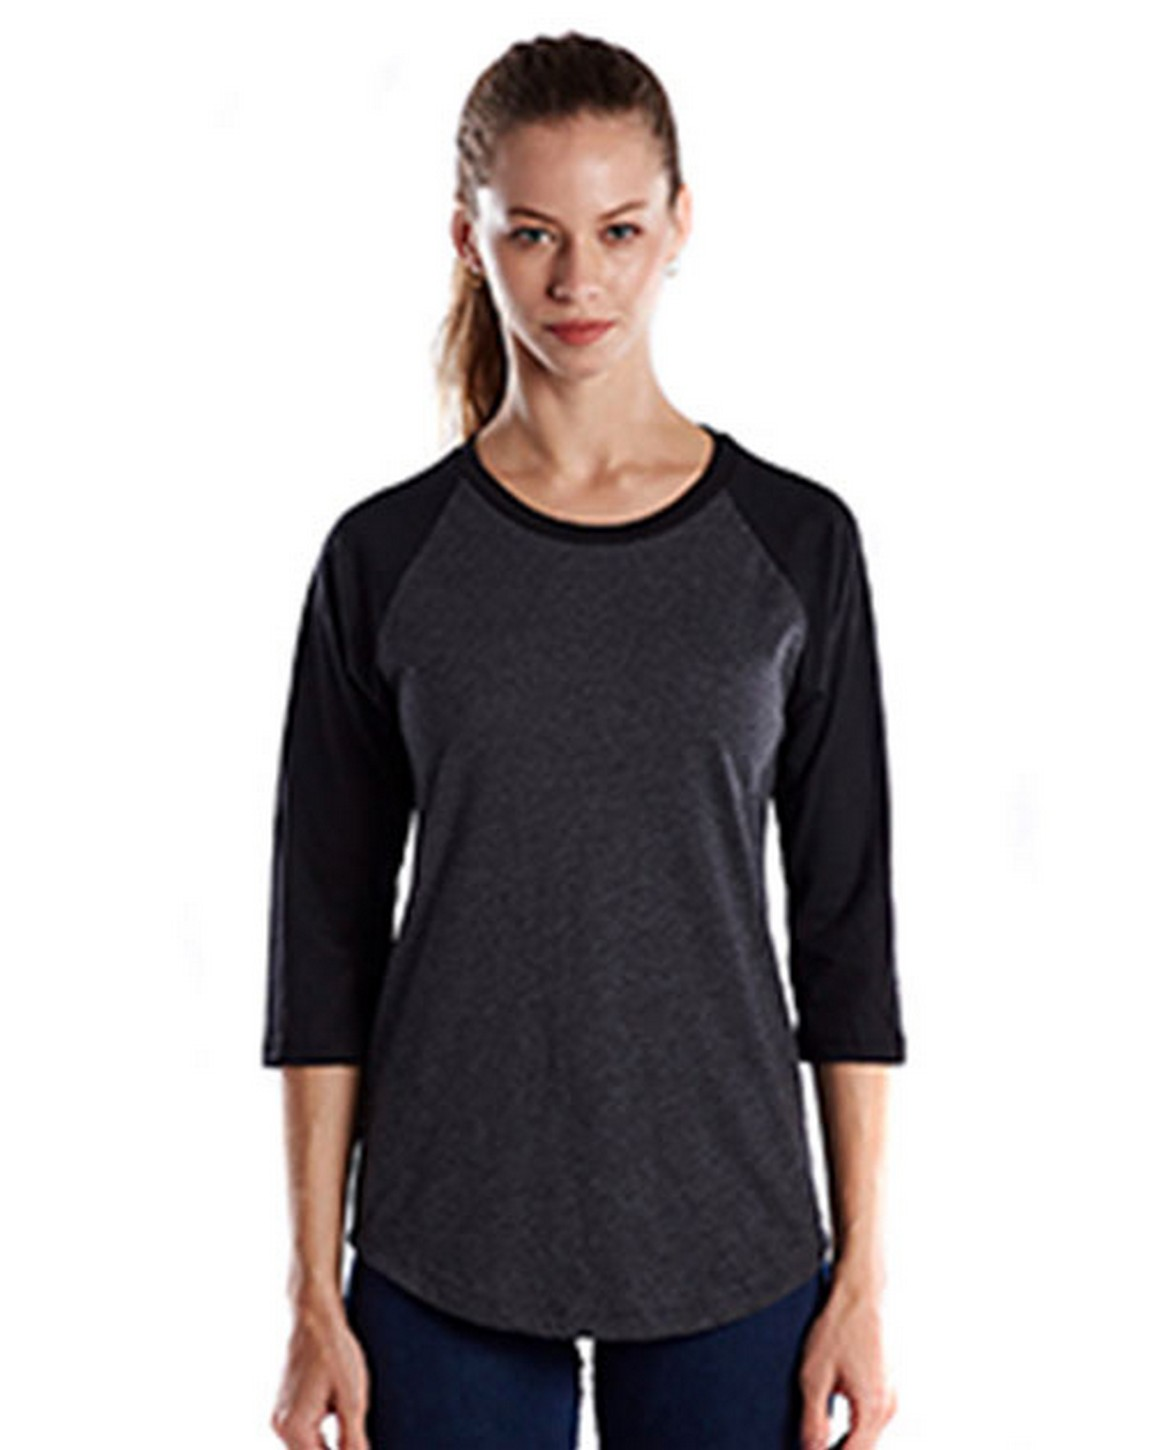 US Blanks US600 Ladies 4.3 oz. 3/4-Sleeve Baseball Raglan